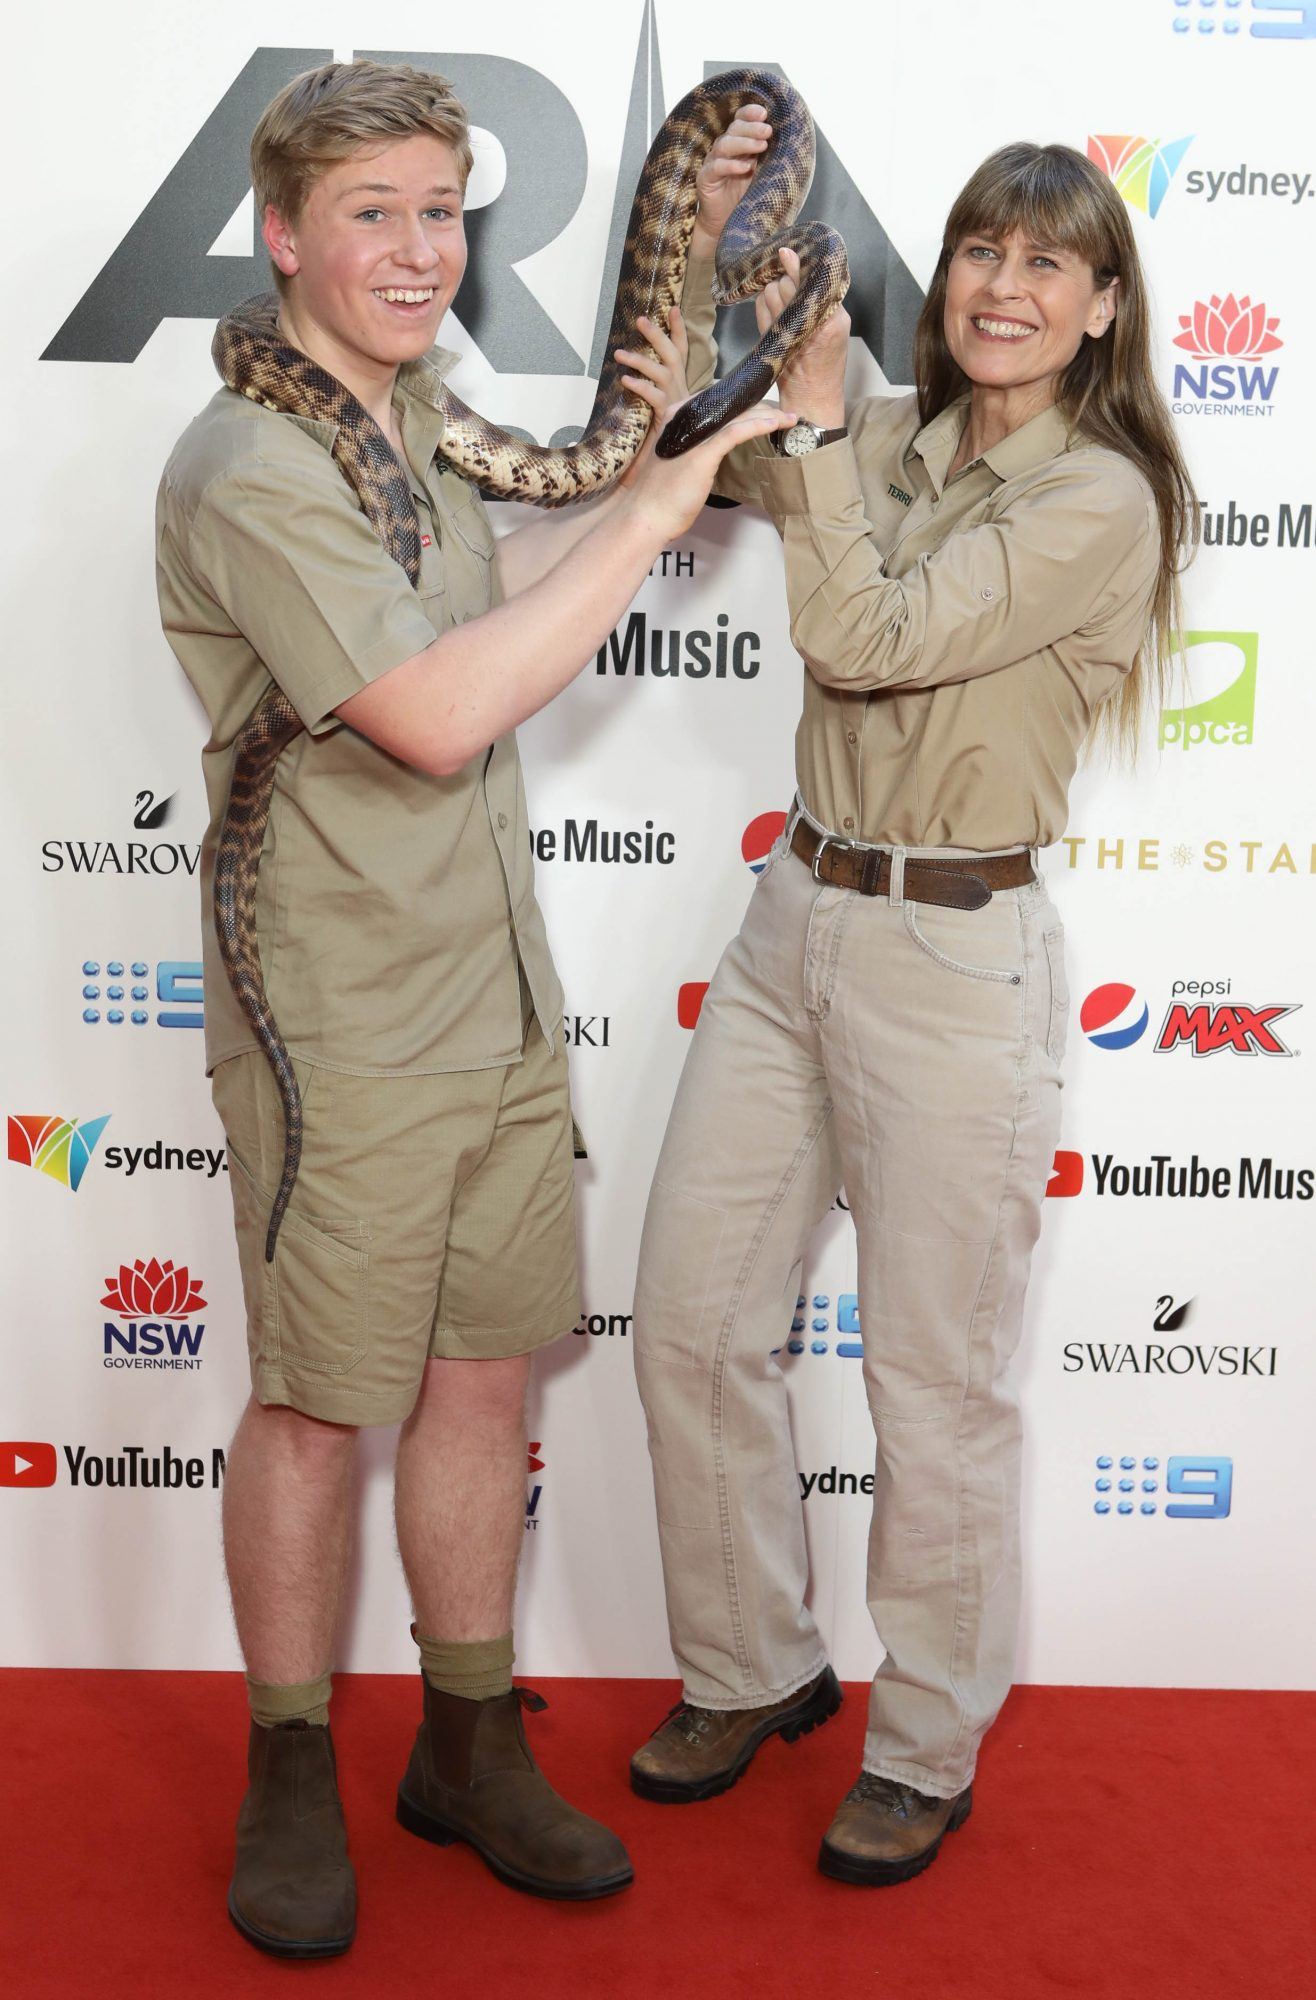 *NO MAIL ONLINE* Stars Walk The Red Carpet At The 2019 Aria Awards In Sydney, Australia